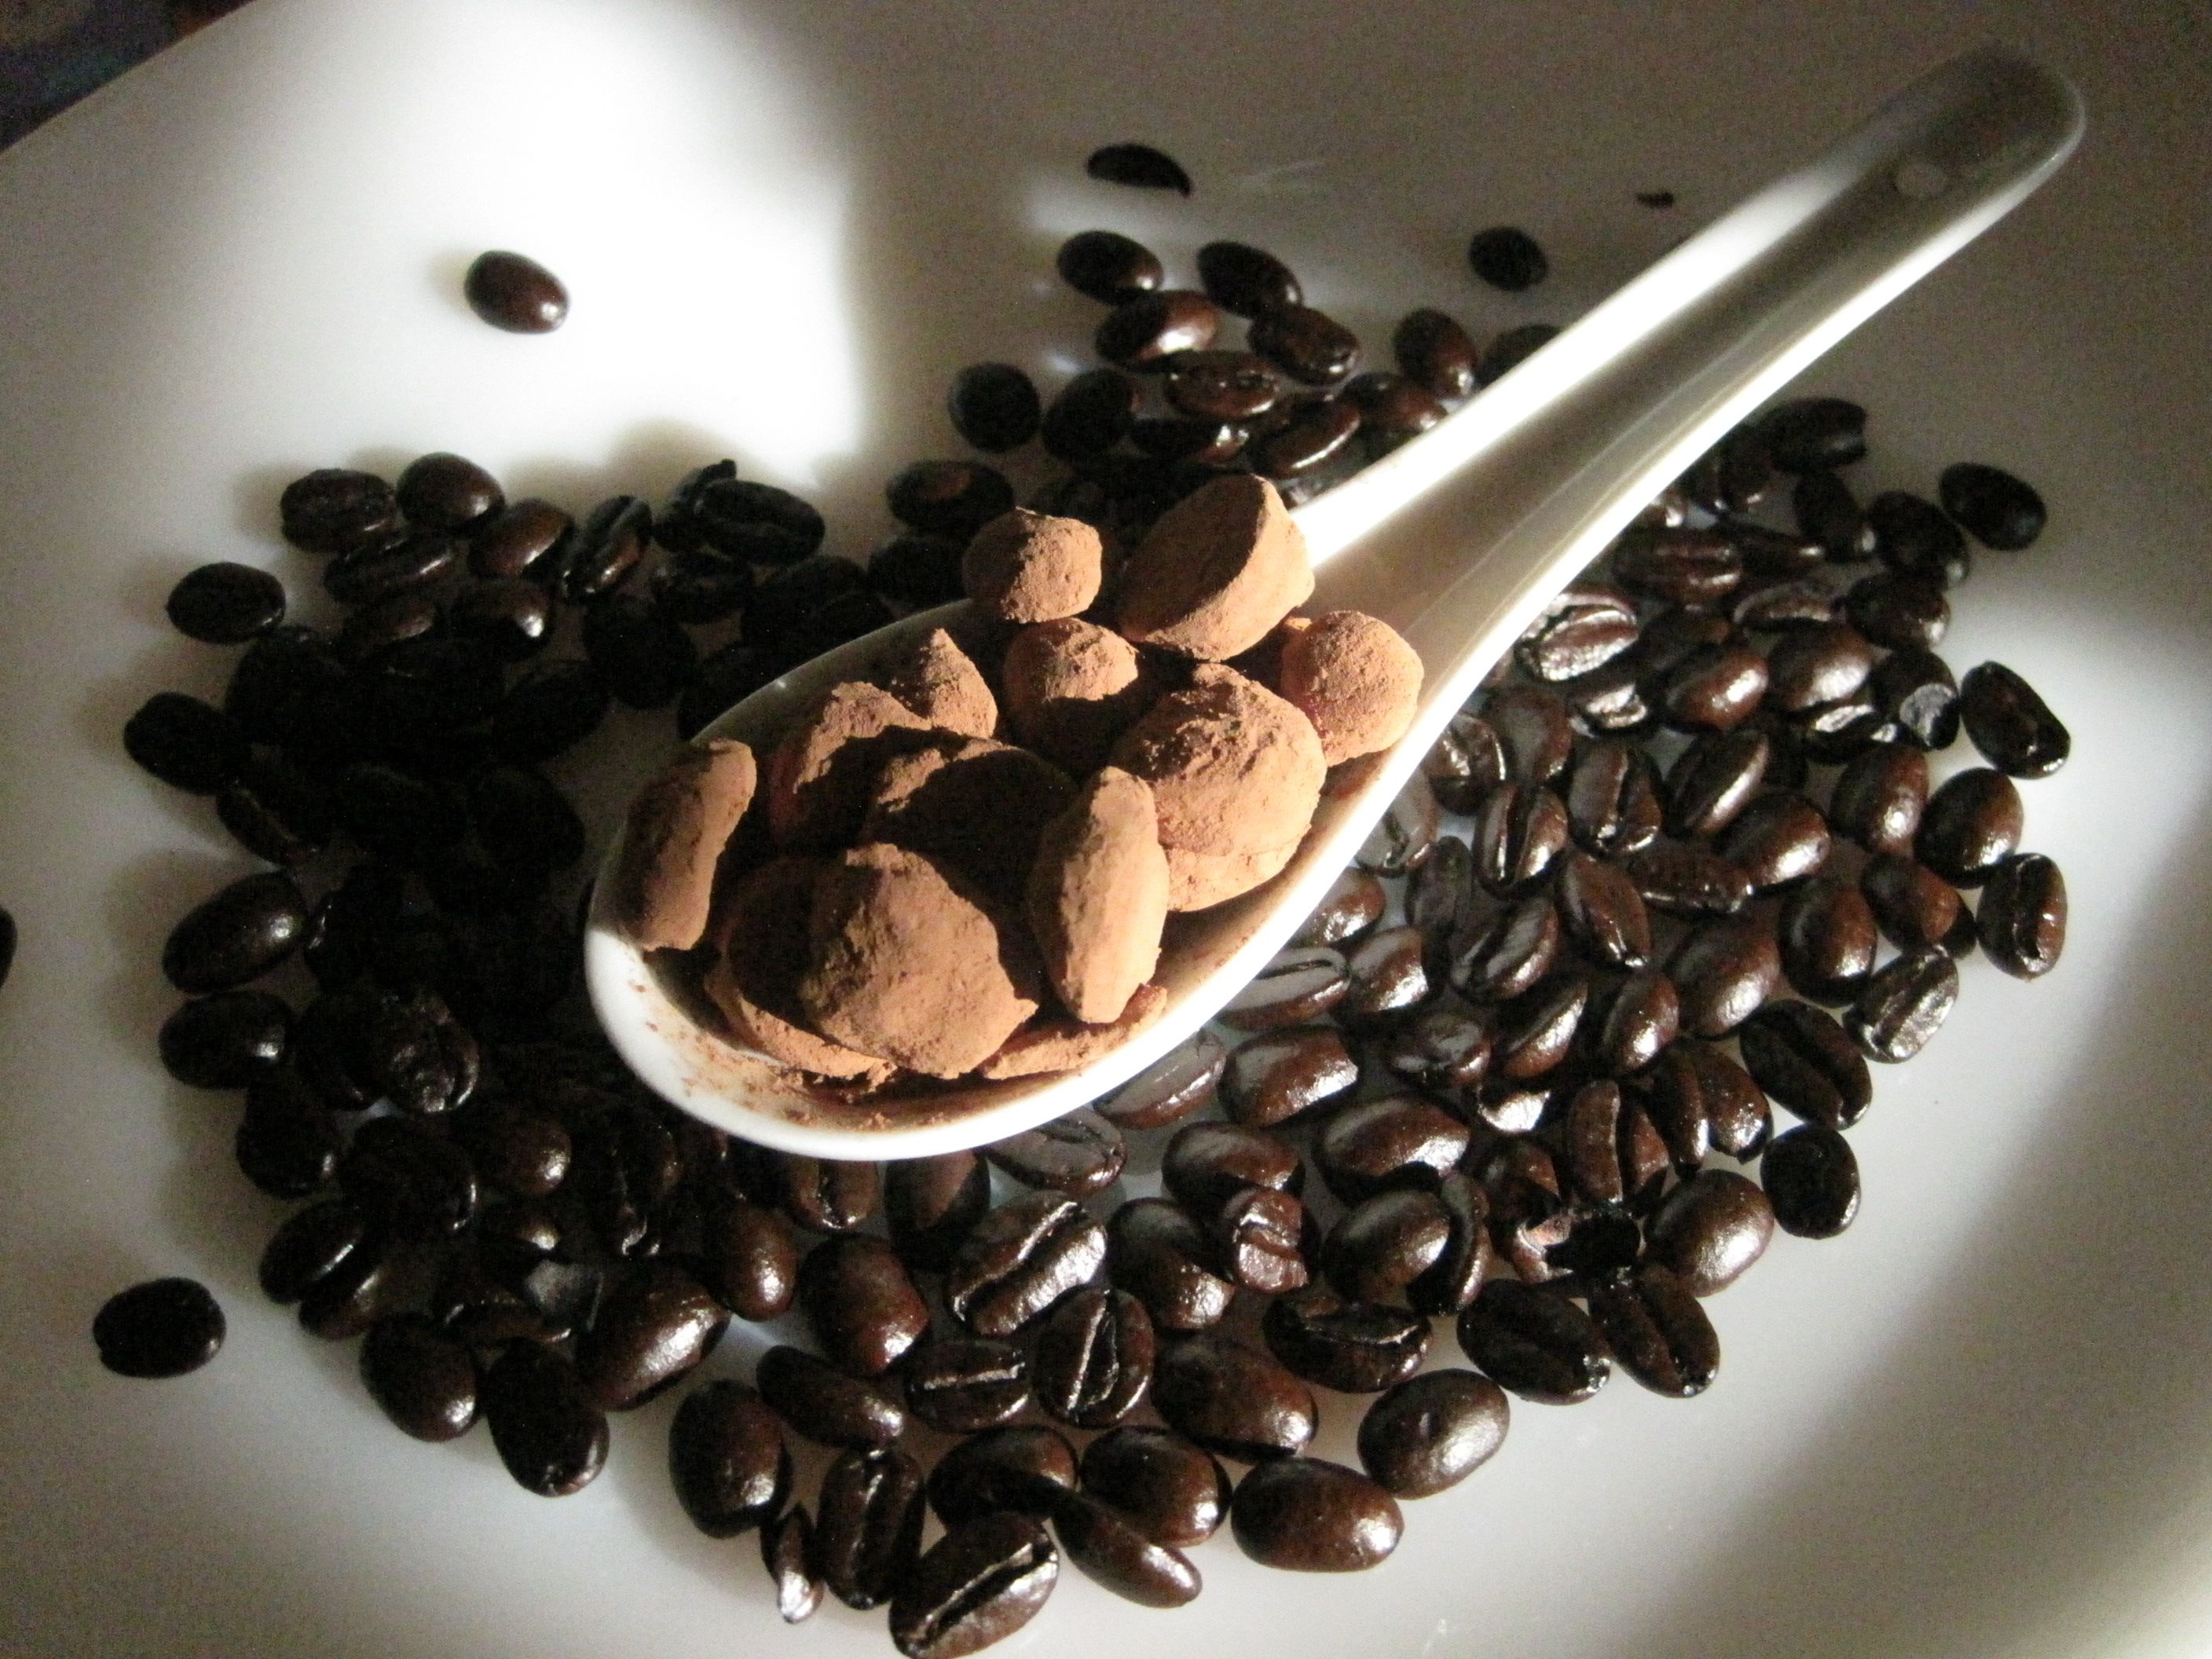 Chocolate Covered Coffee Beans – Story Cooking